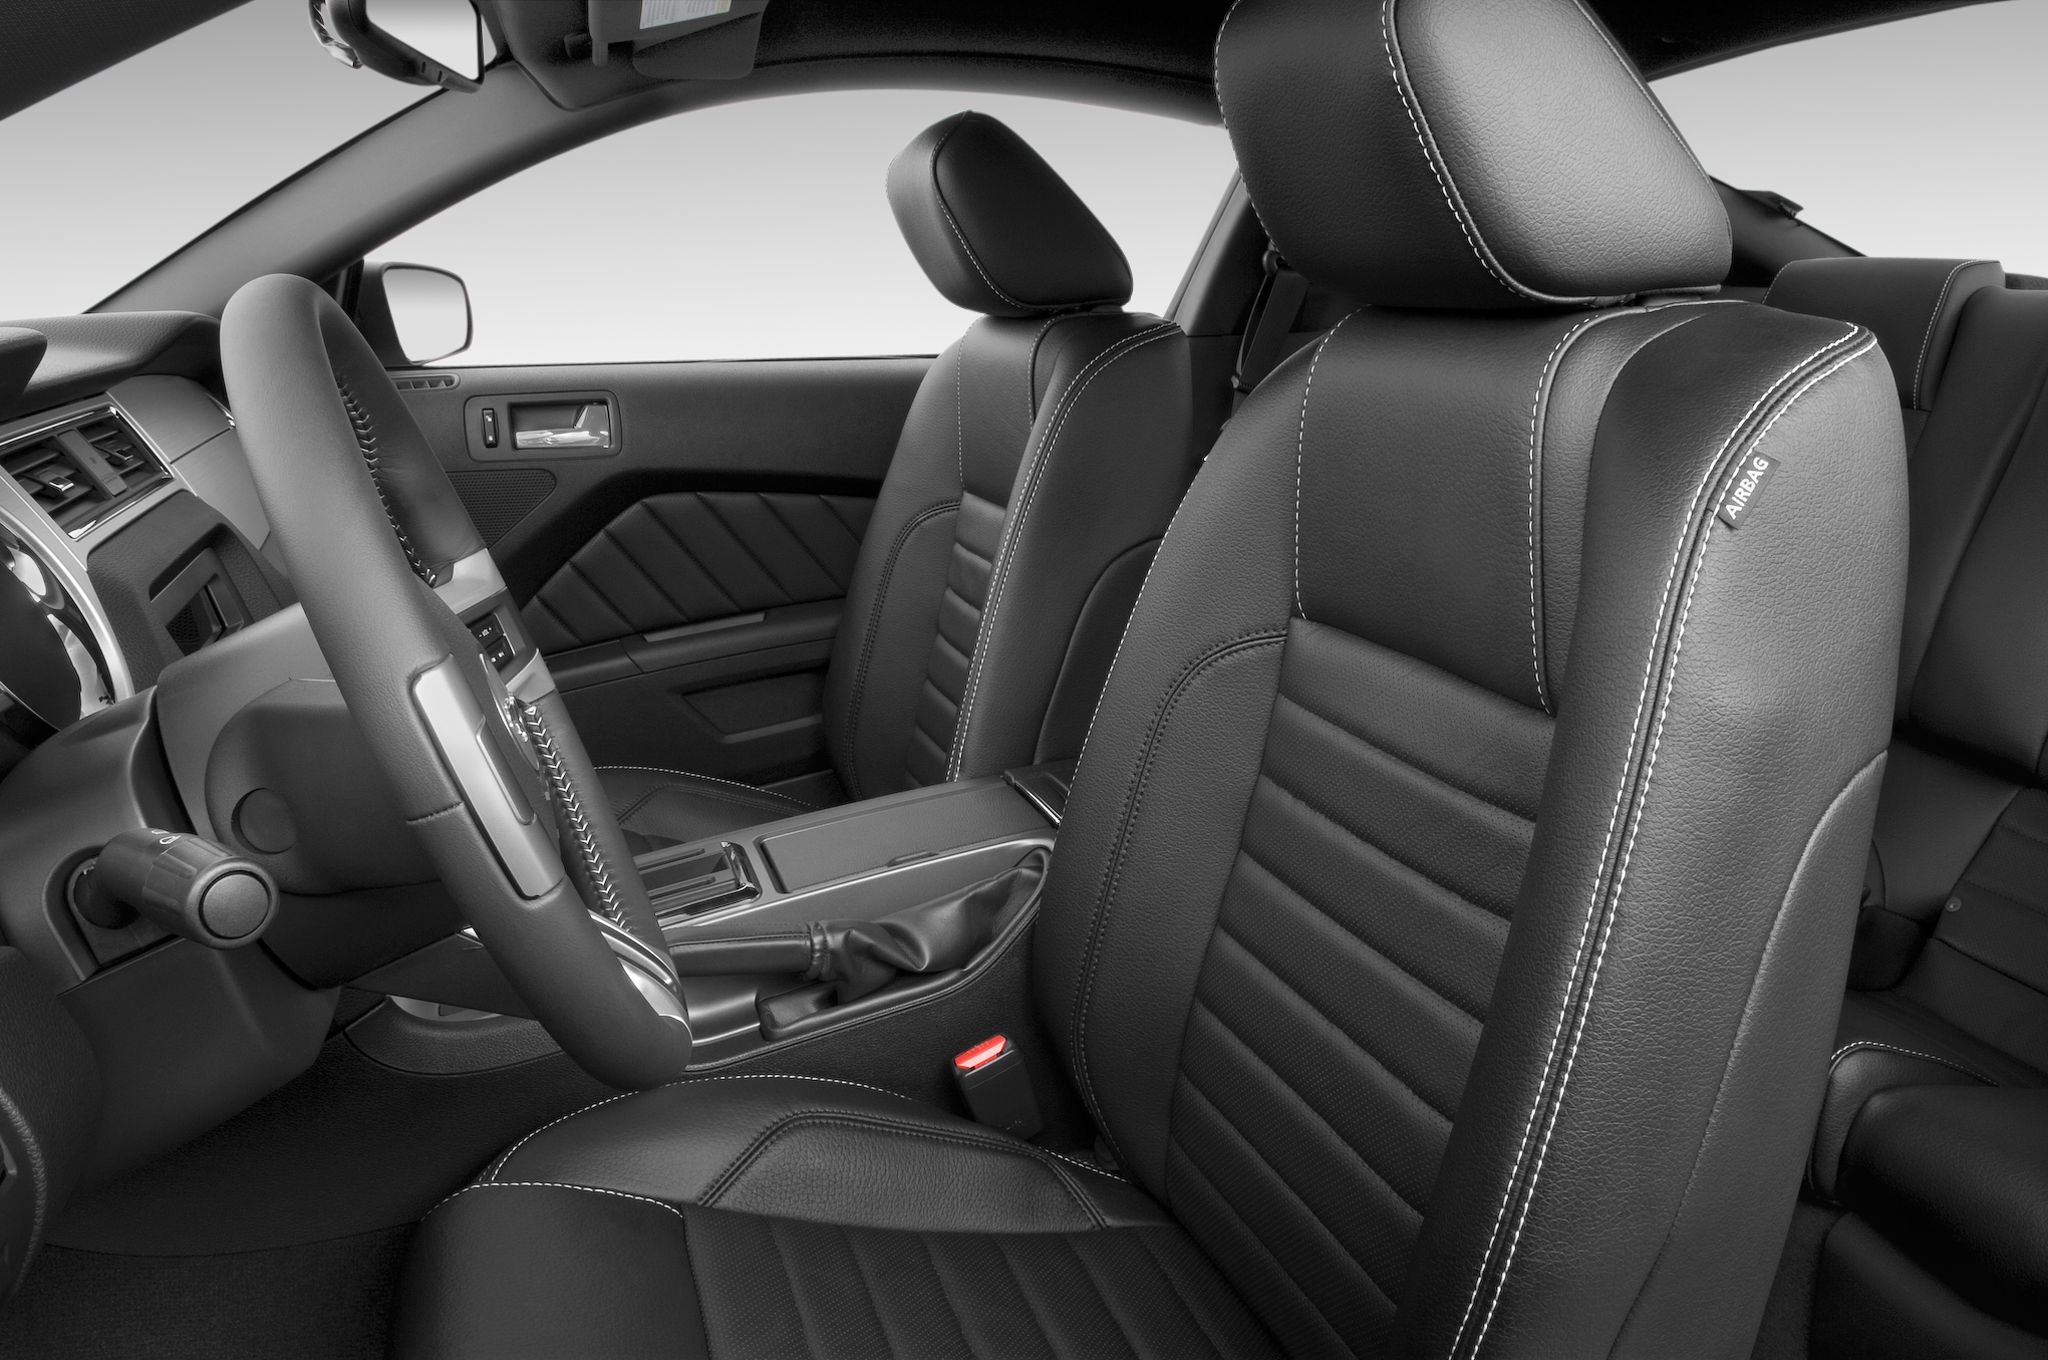 2010 ford mustang seat covers velcromag